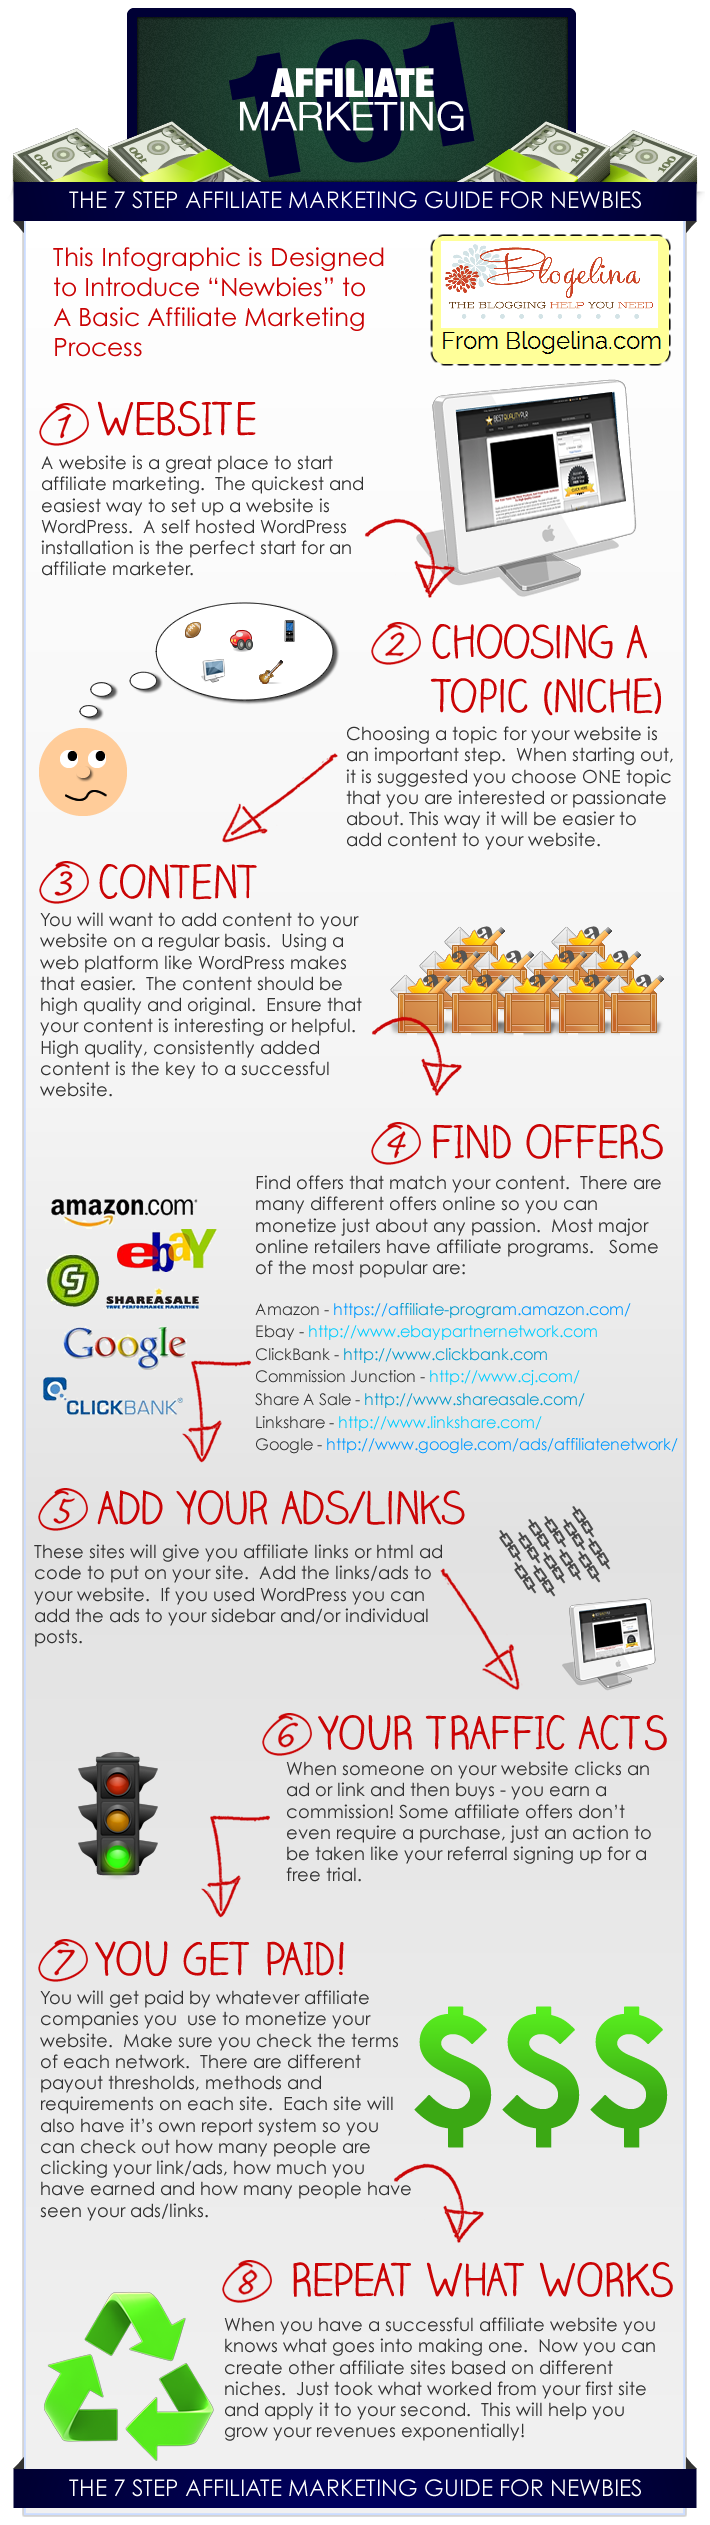 Affiliate Marketing Guide for Newbies